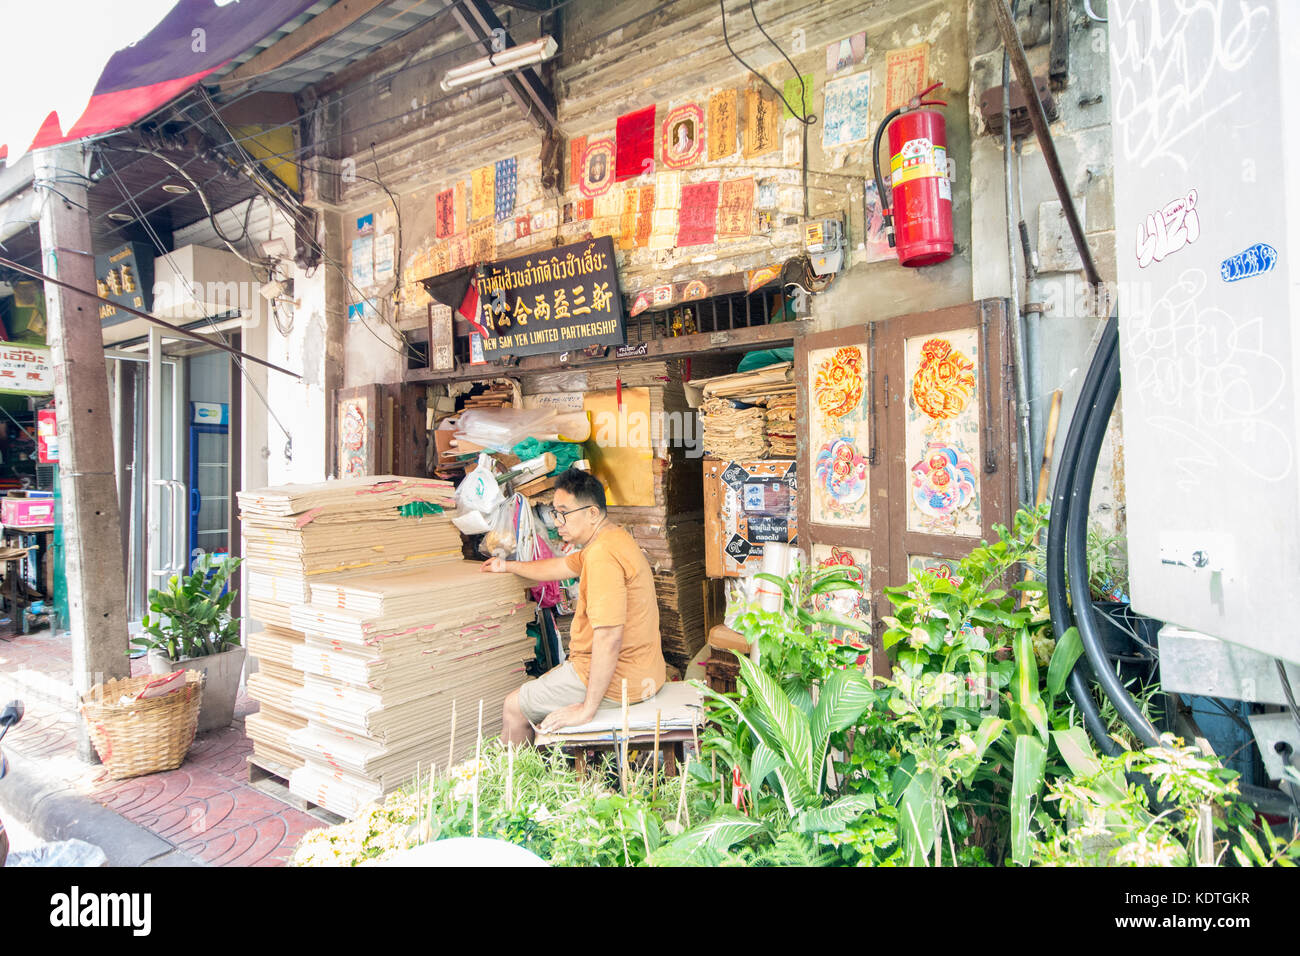 Man sat outside typical business premises, Chinatown, Bangkok, Thailand - Stock Image